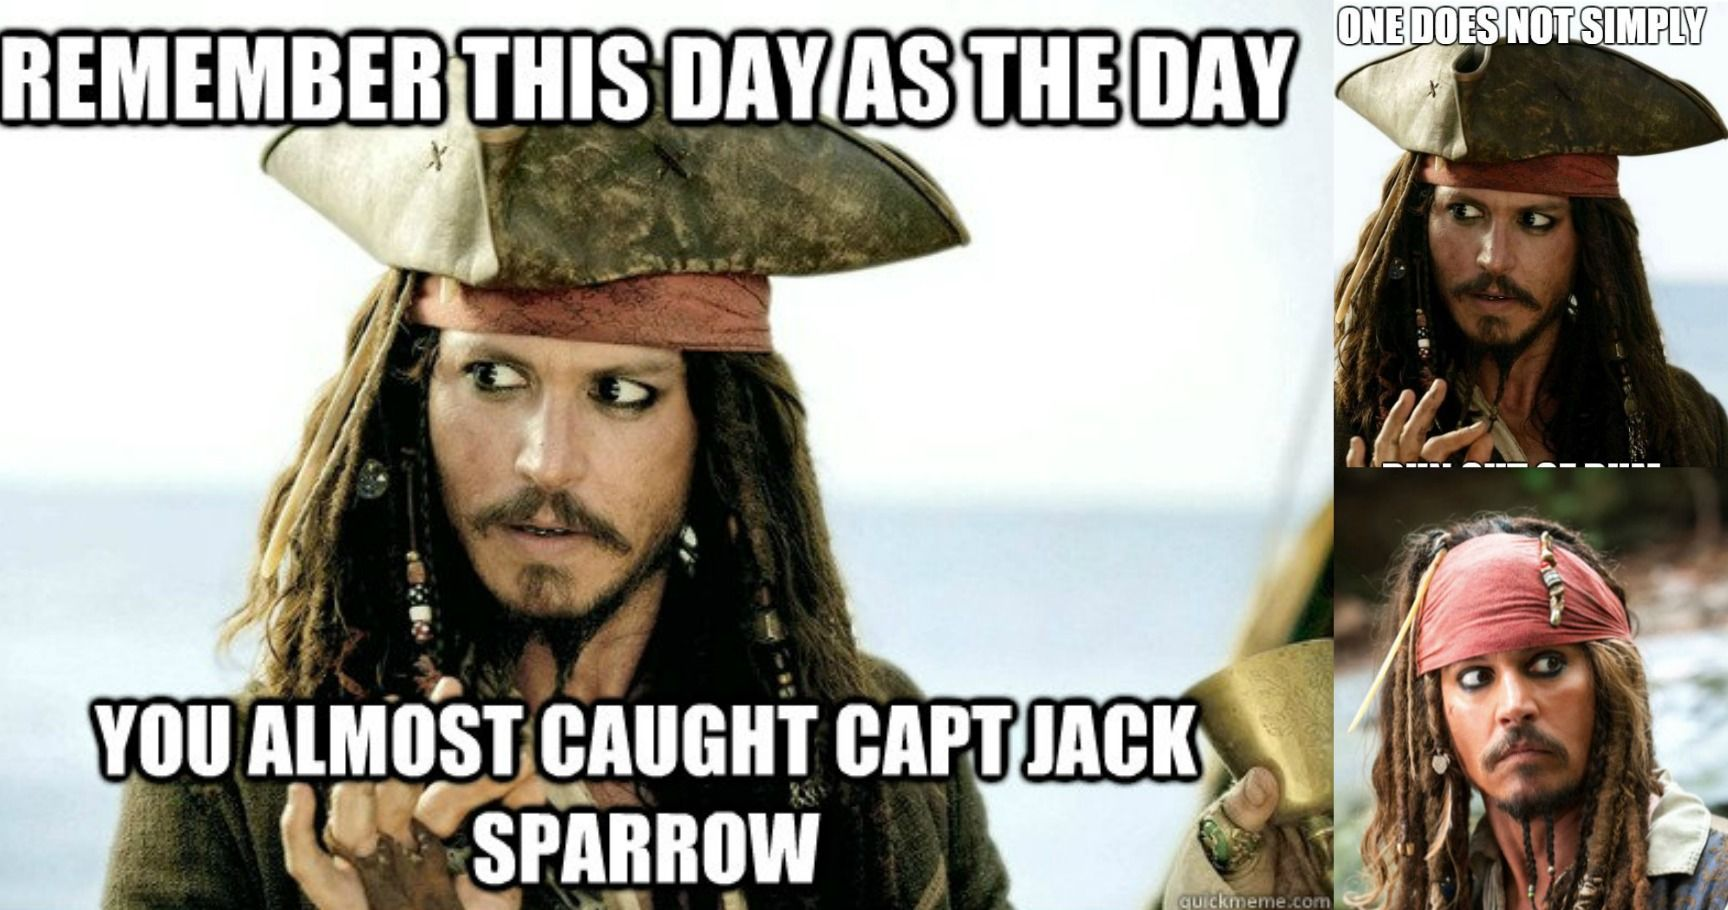 Pirates Of The Caribbean Quotes 15 Jack Sparrow Quotes That Are Too Perfect For Words